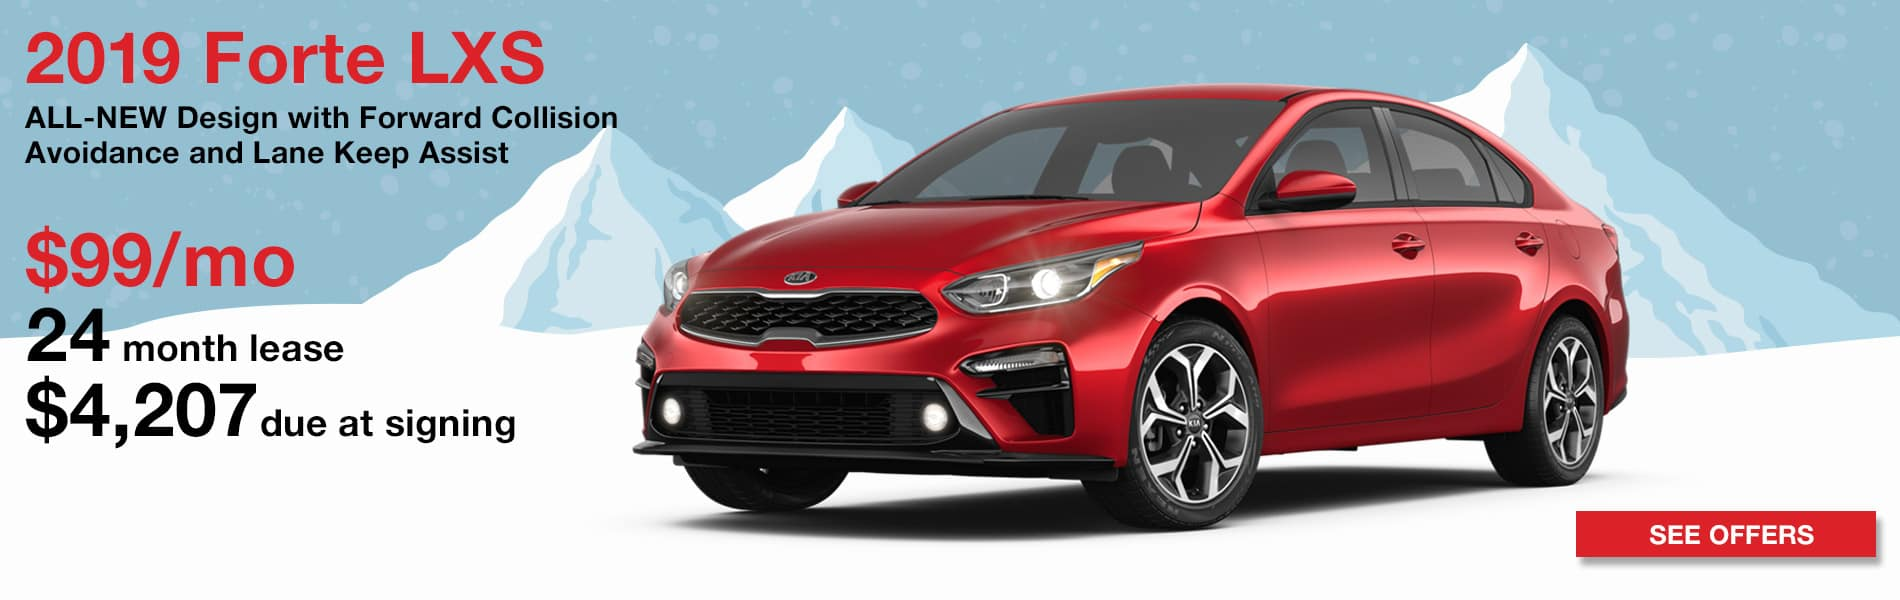 Lease a 2019 Forte LXS for $99 per month with $4,207 due at signing